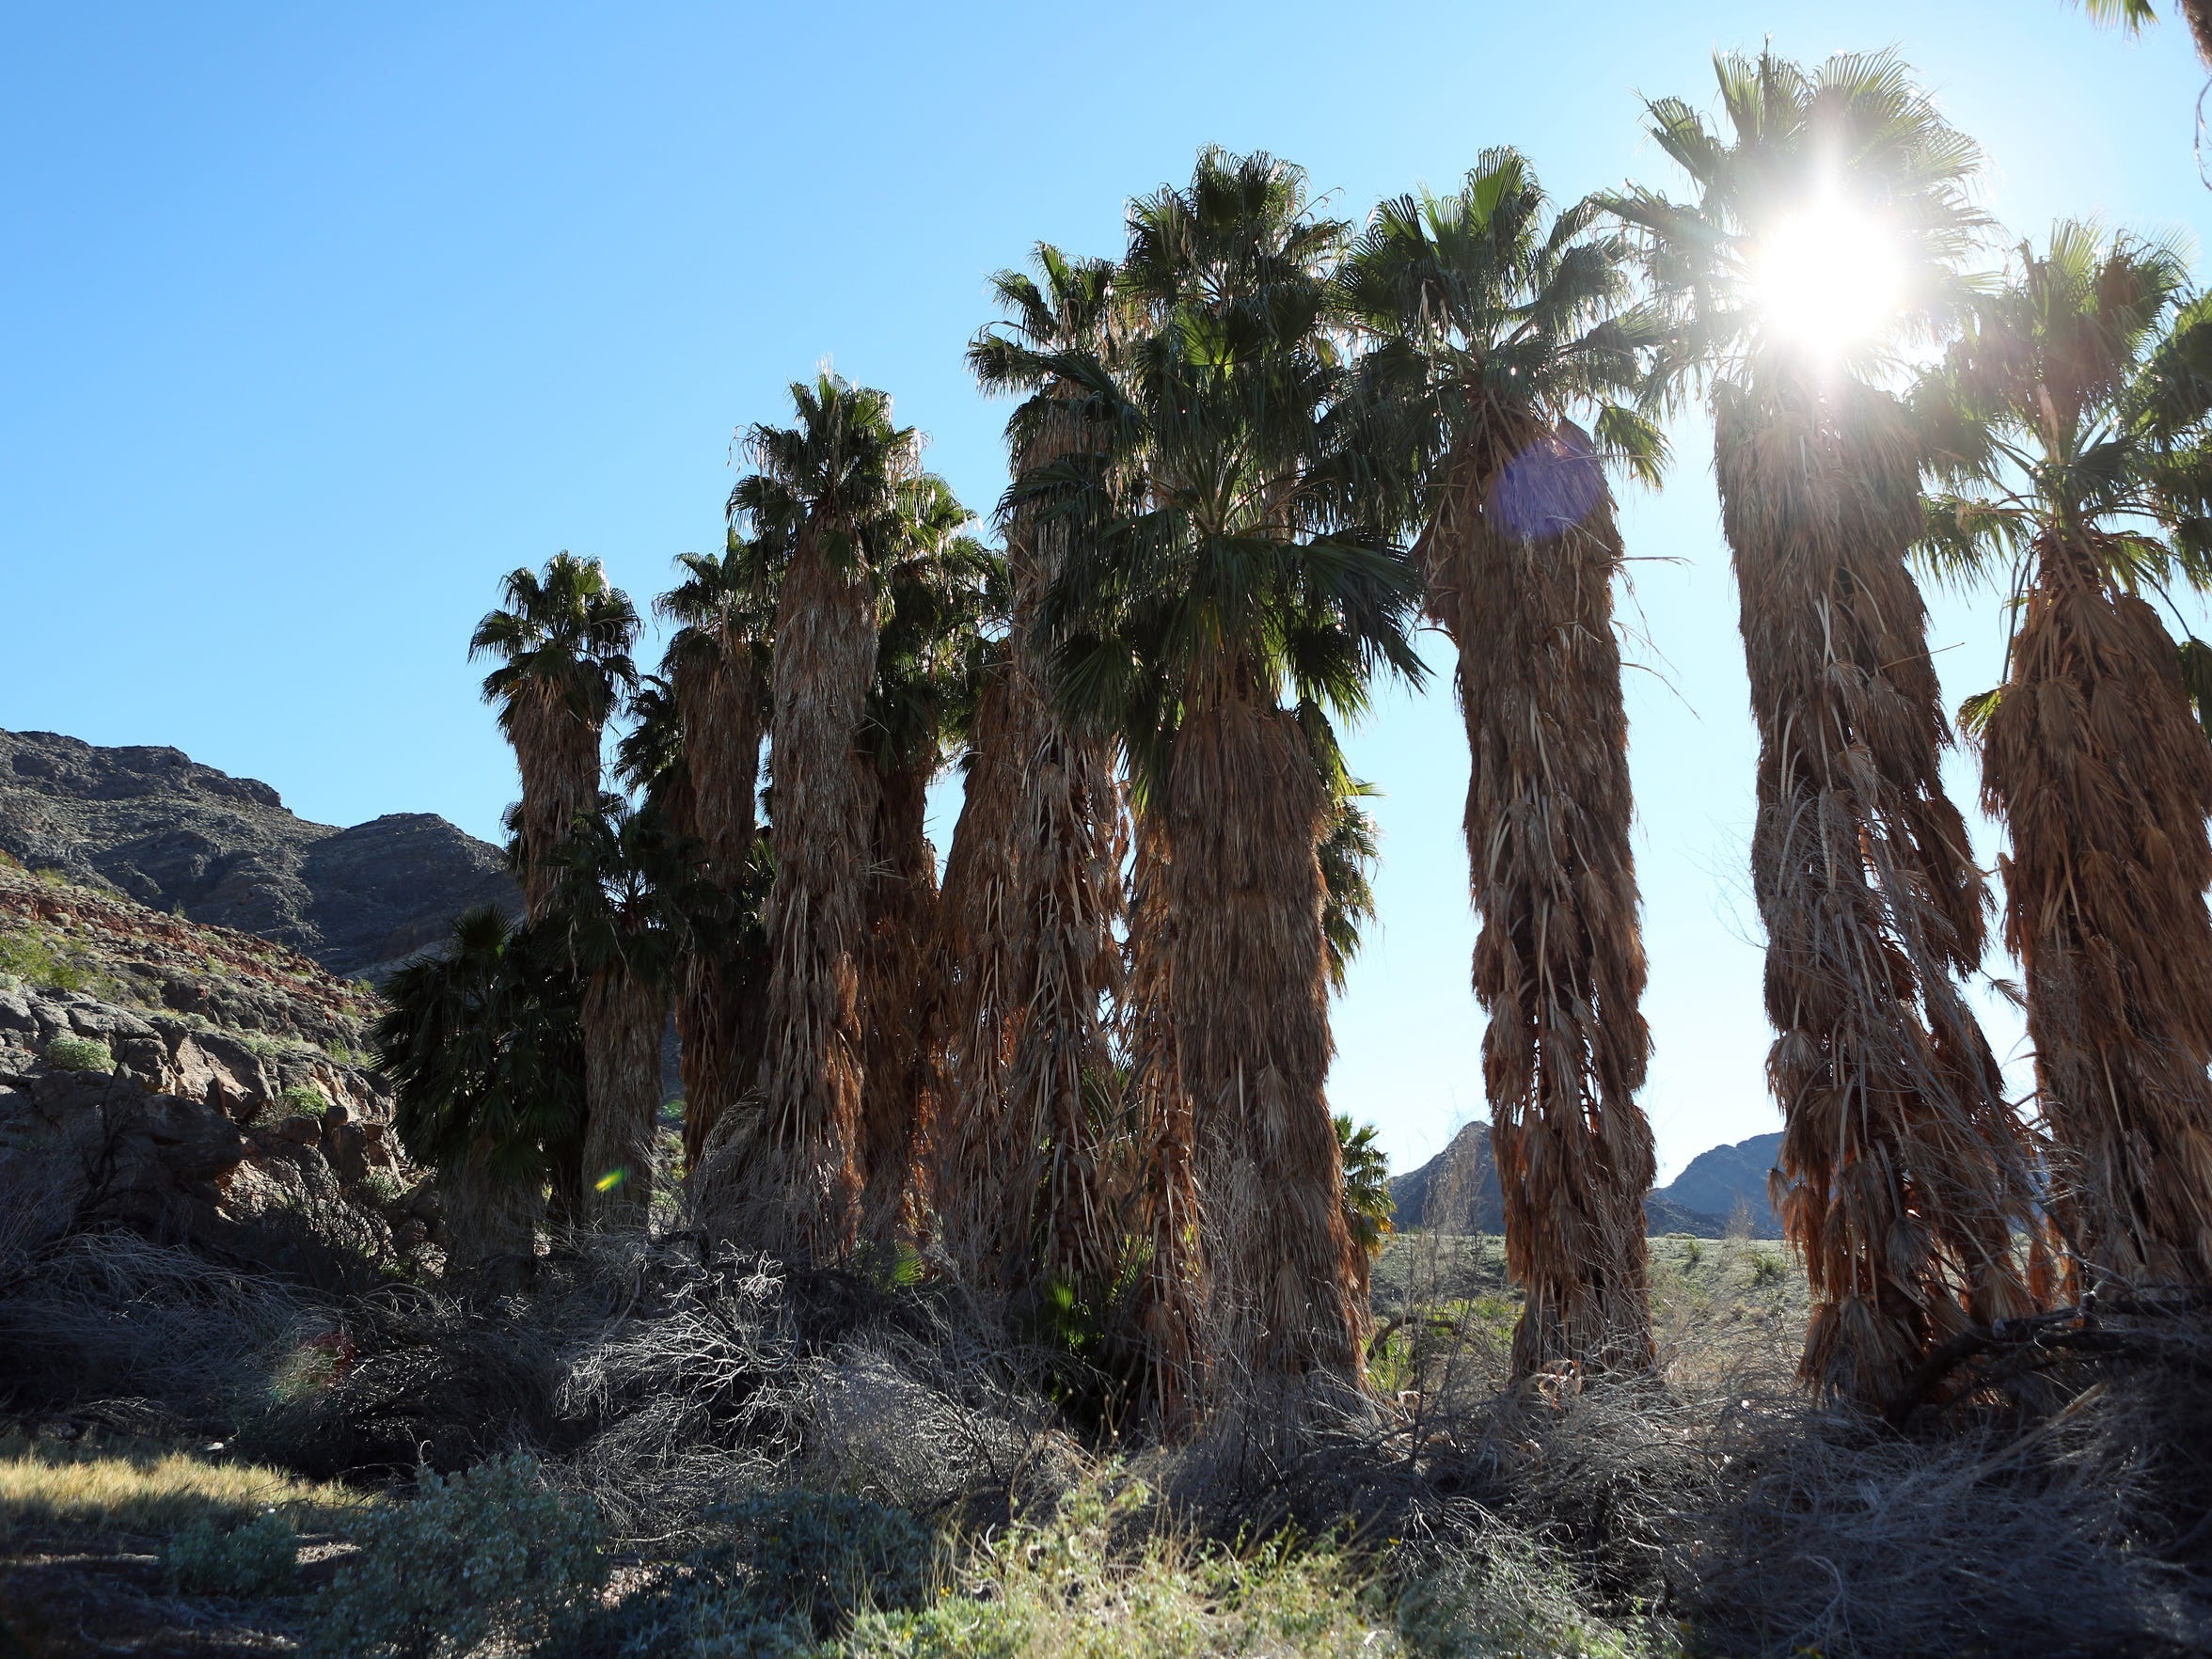 California fan palms surround Chappo Spring in the Amargosa River Basin near Death Valley.